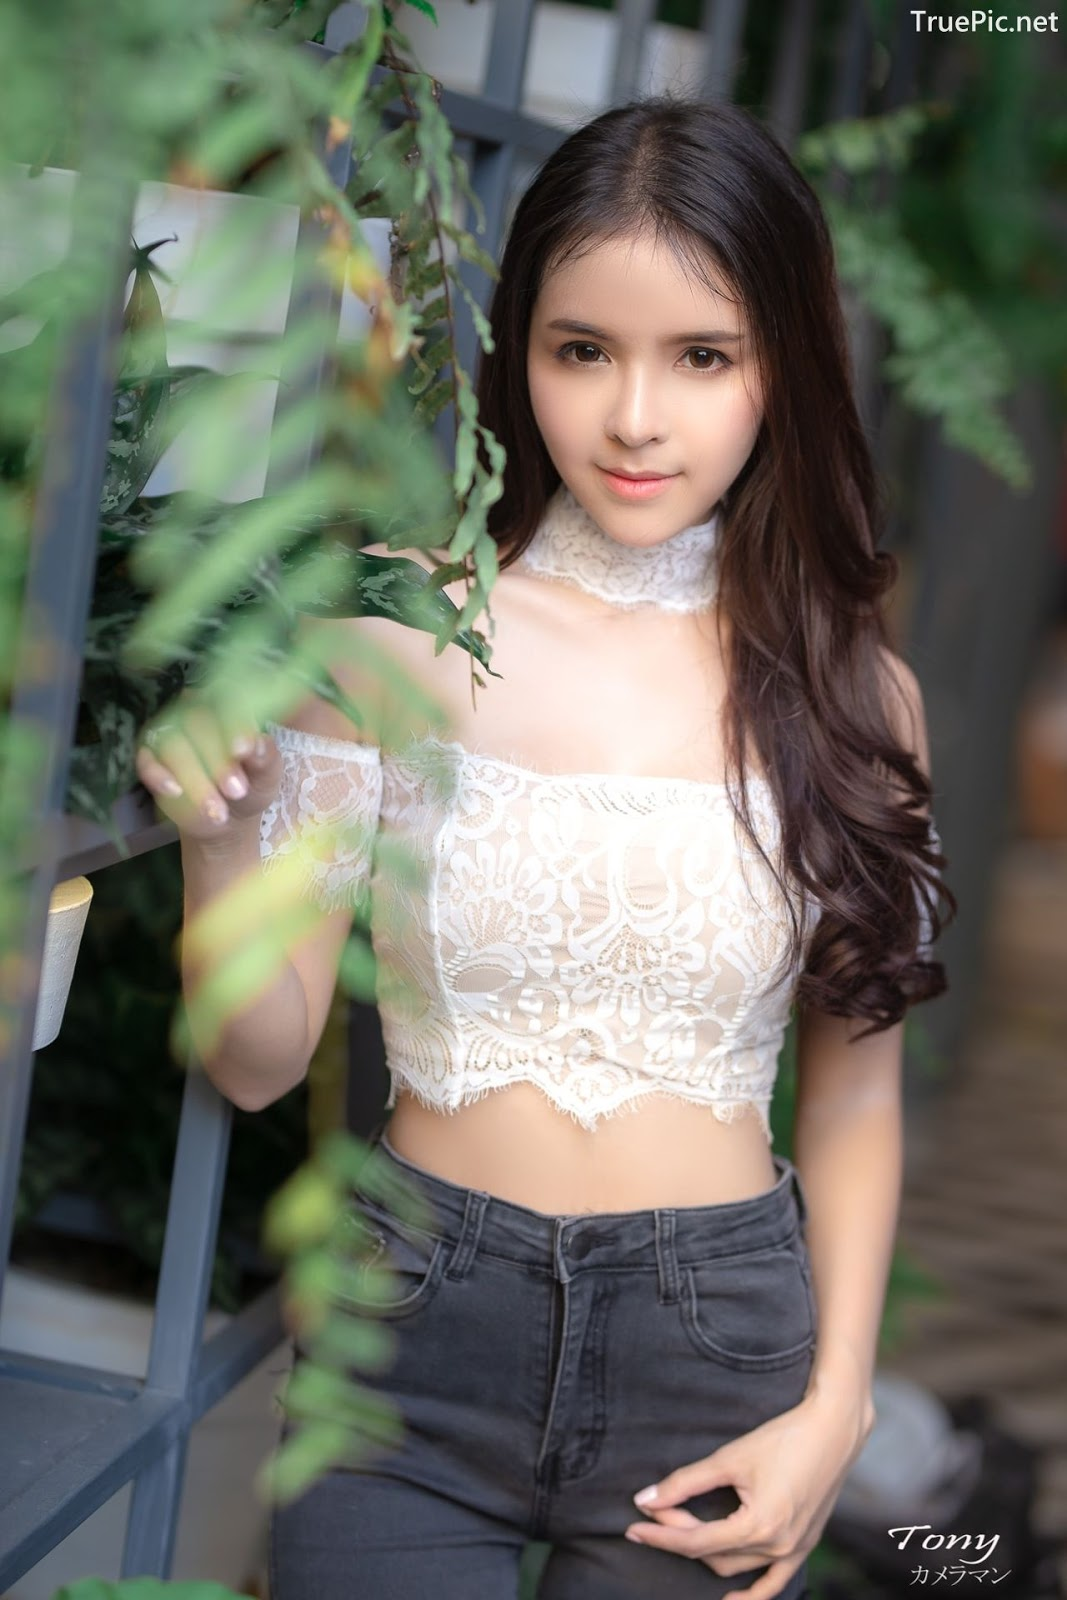 Image-Thailand-Beautiful-Model-Soithip-Palwongpaisal-Transparent-Lace-Crop-Top-And-Jean-TruePic.net- Picture-2